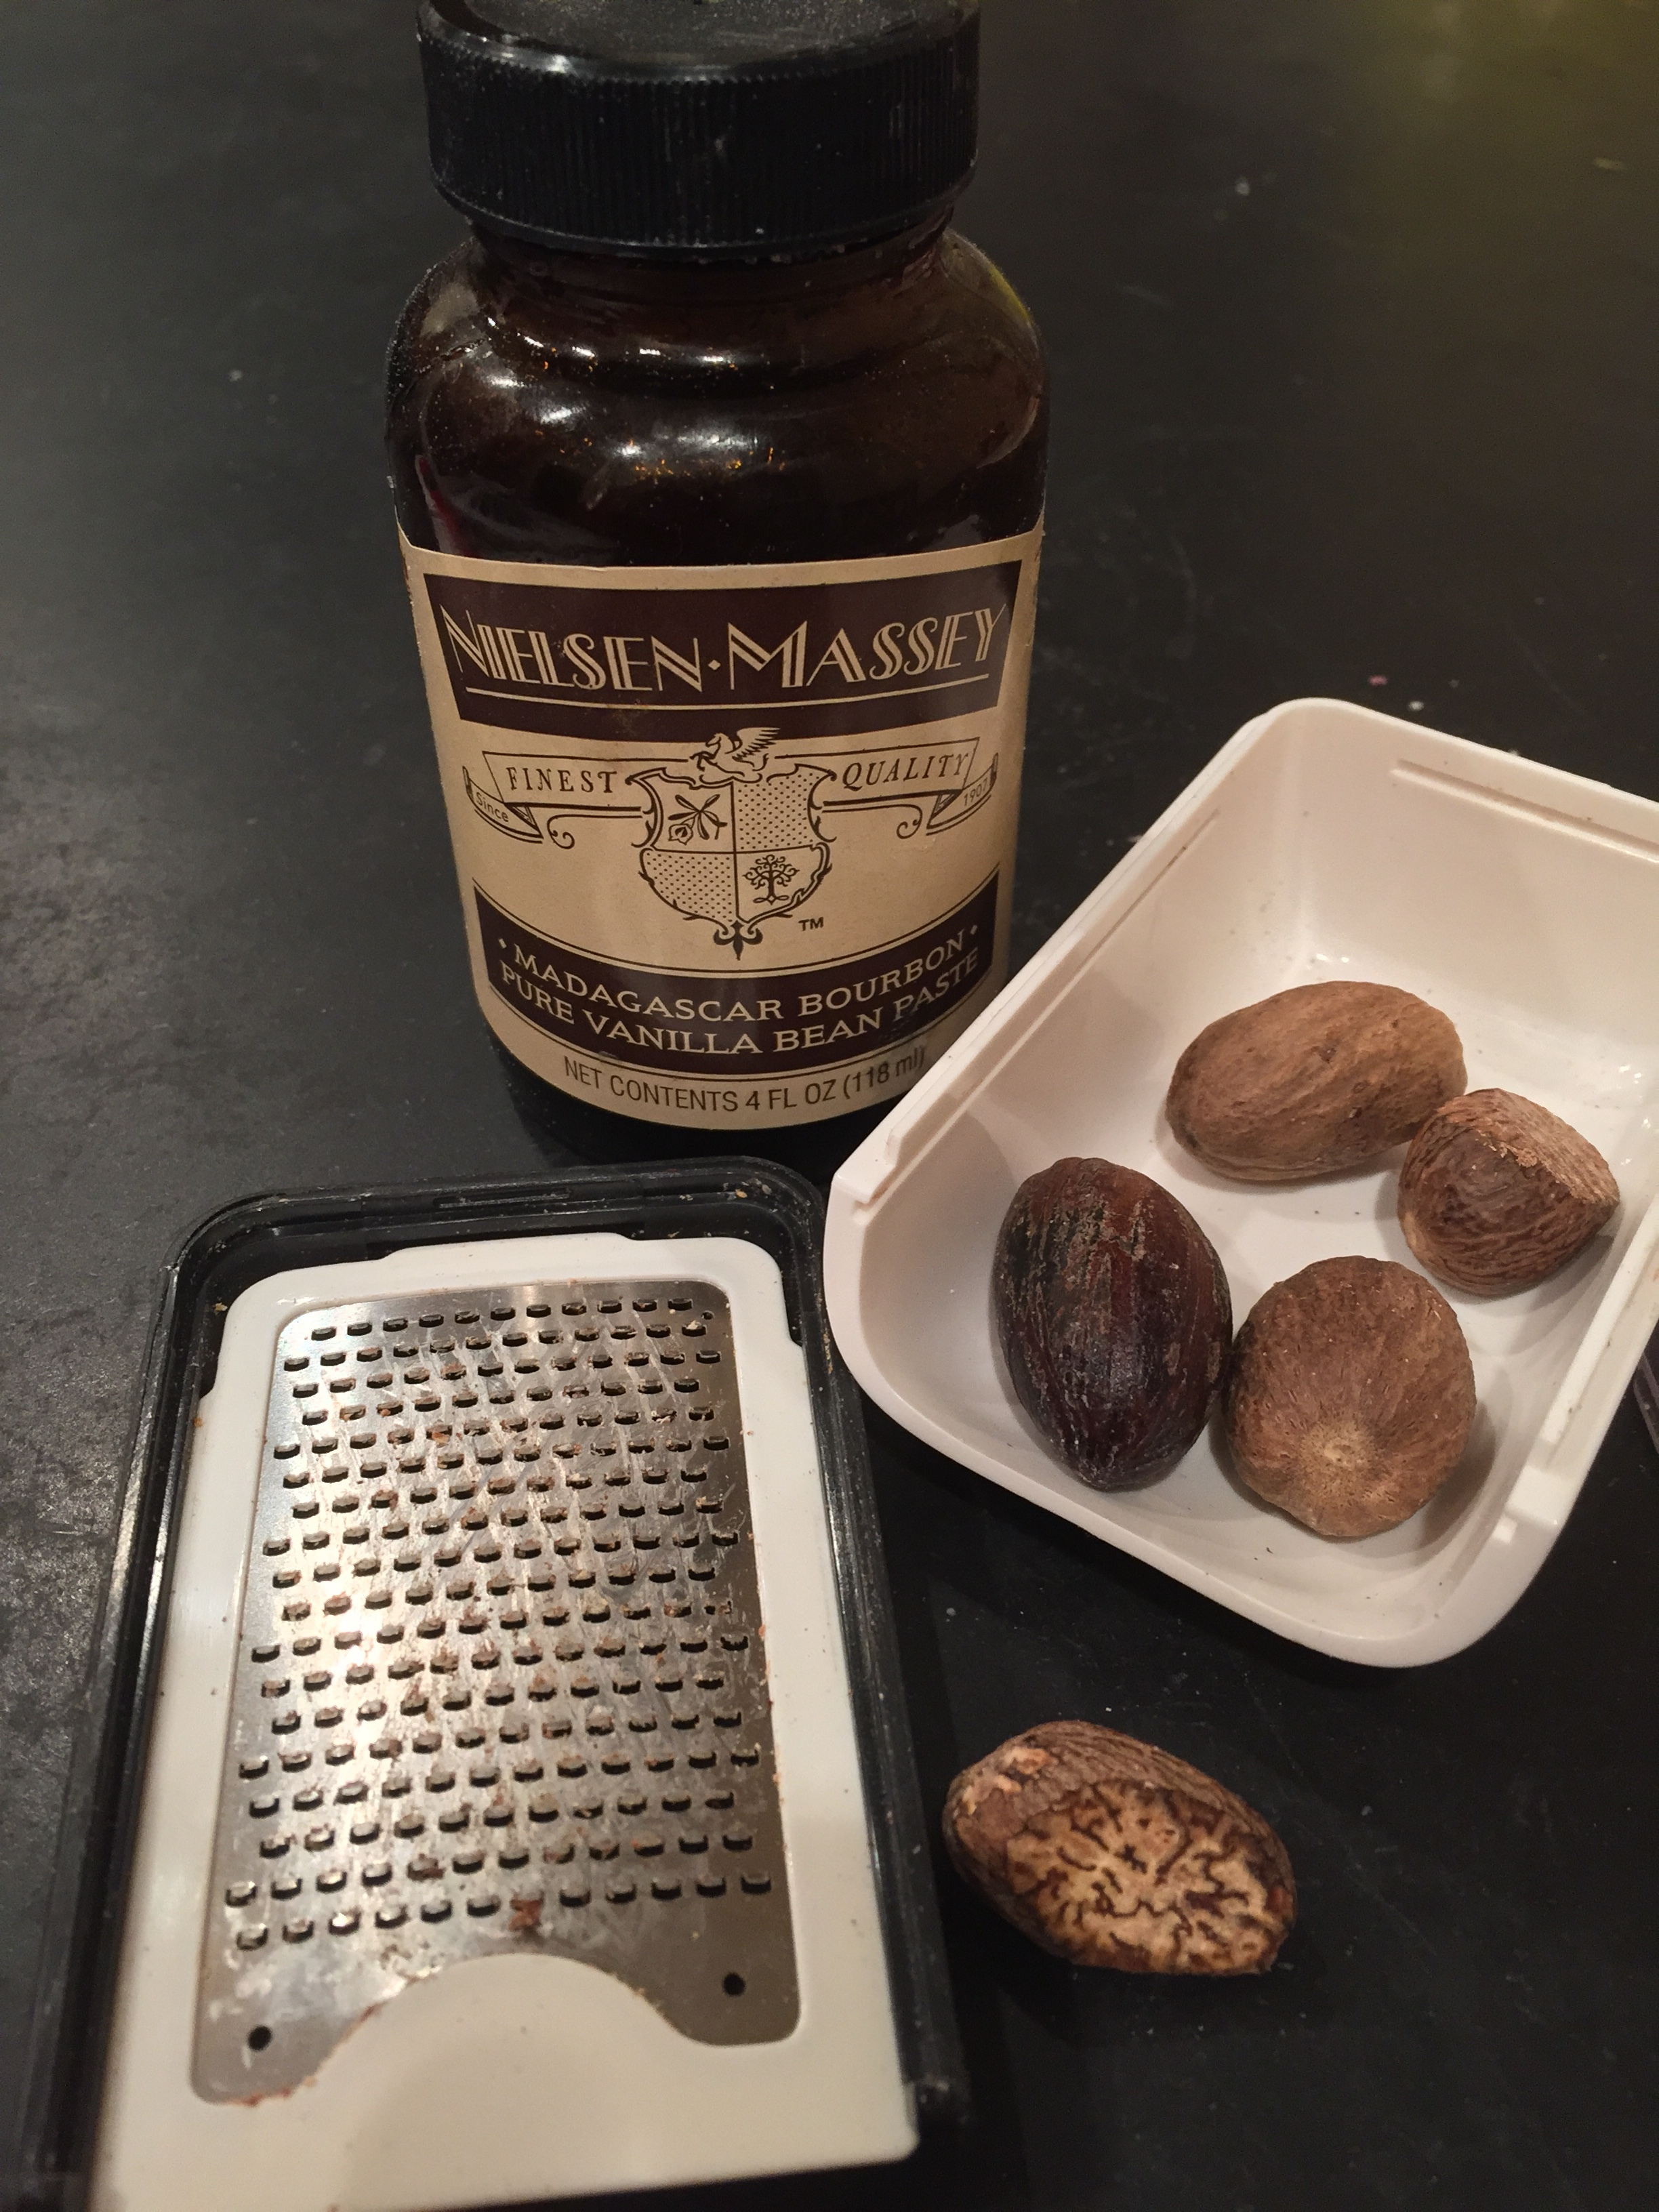 Nielsen-Massey Madagascar Bourbon Pure Vanilla Bean Paste hanging out with my nutmeg grater (yes, such a thing exists) and whole nutmegs. Aren't they cool looking inside?